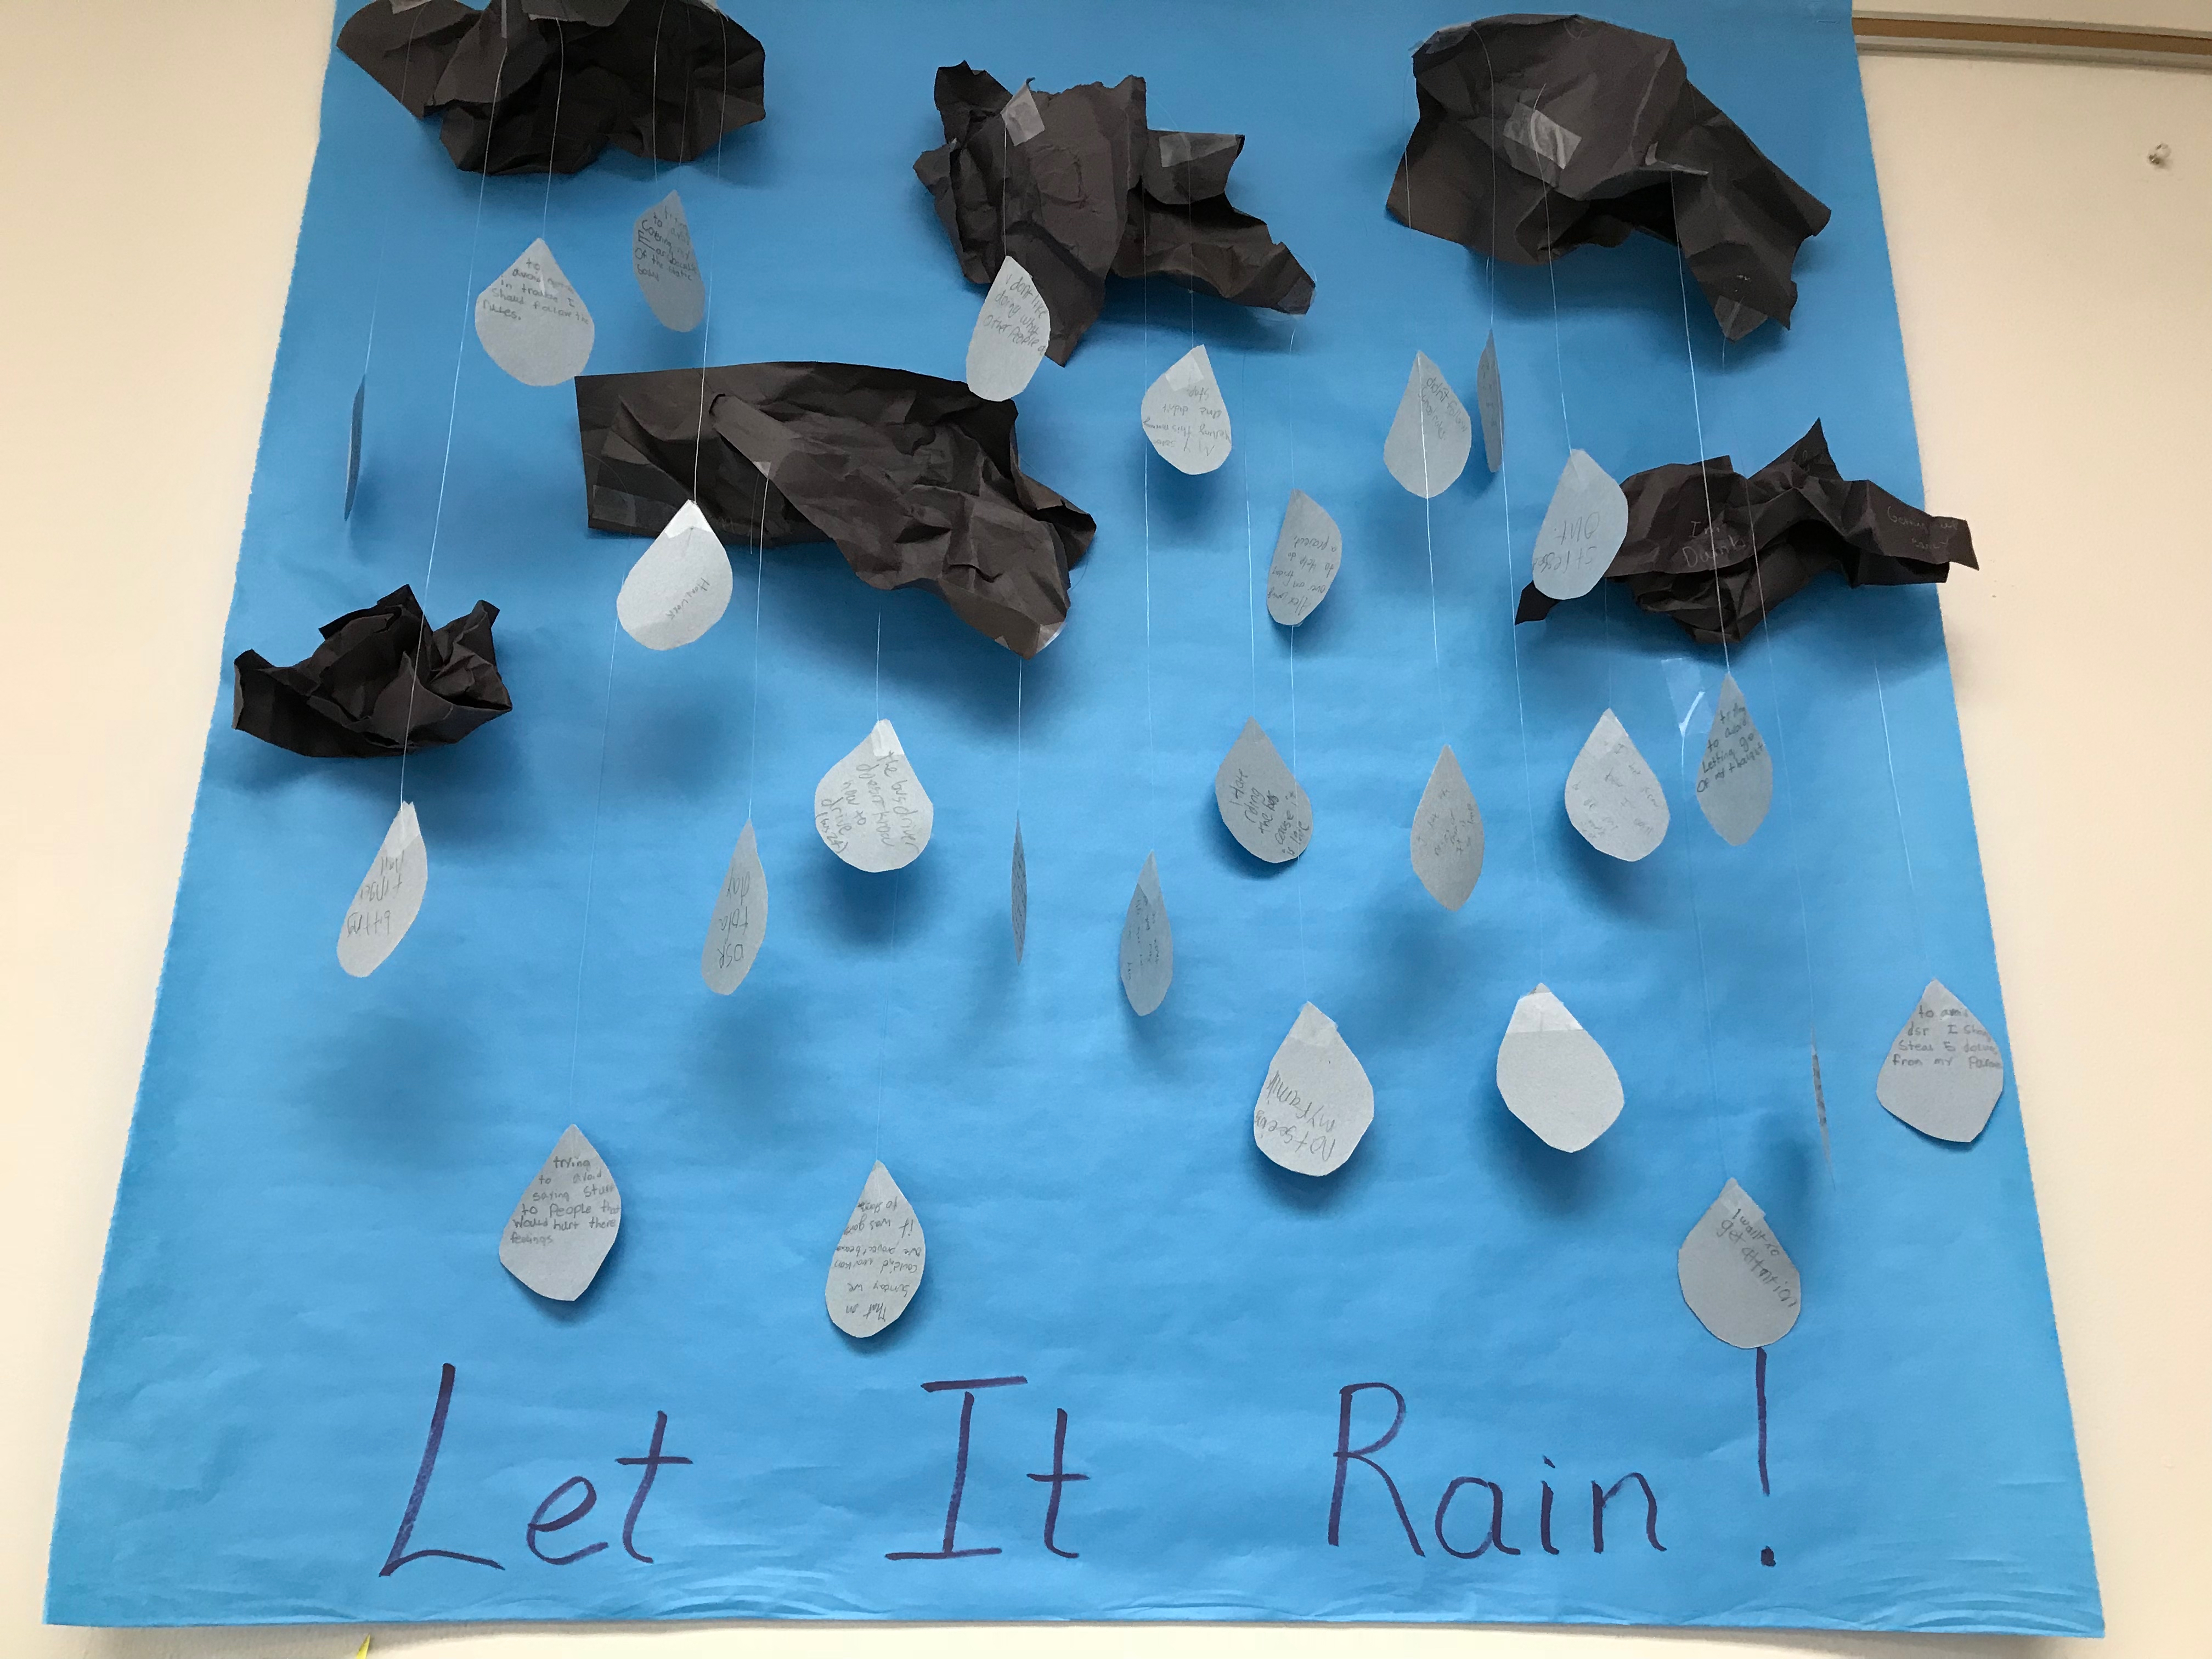 Day 46: Let it Rain